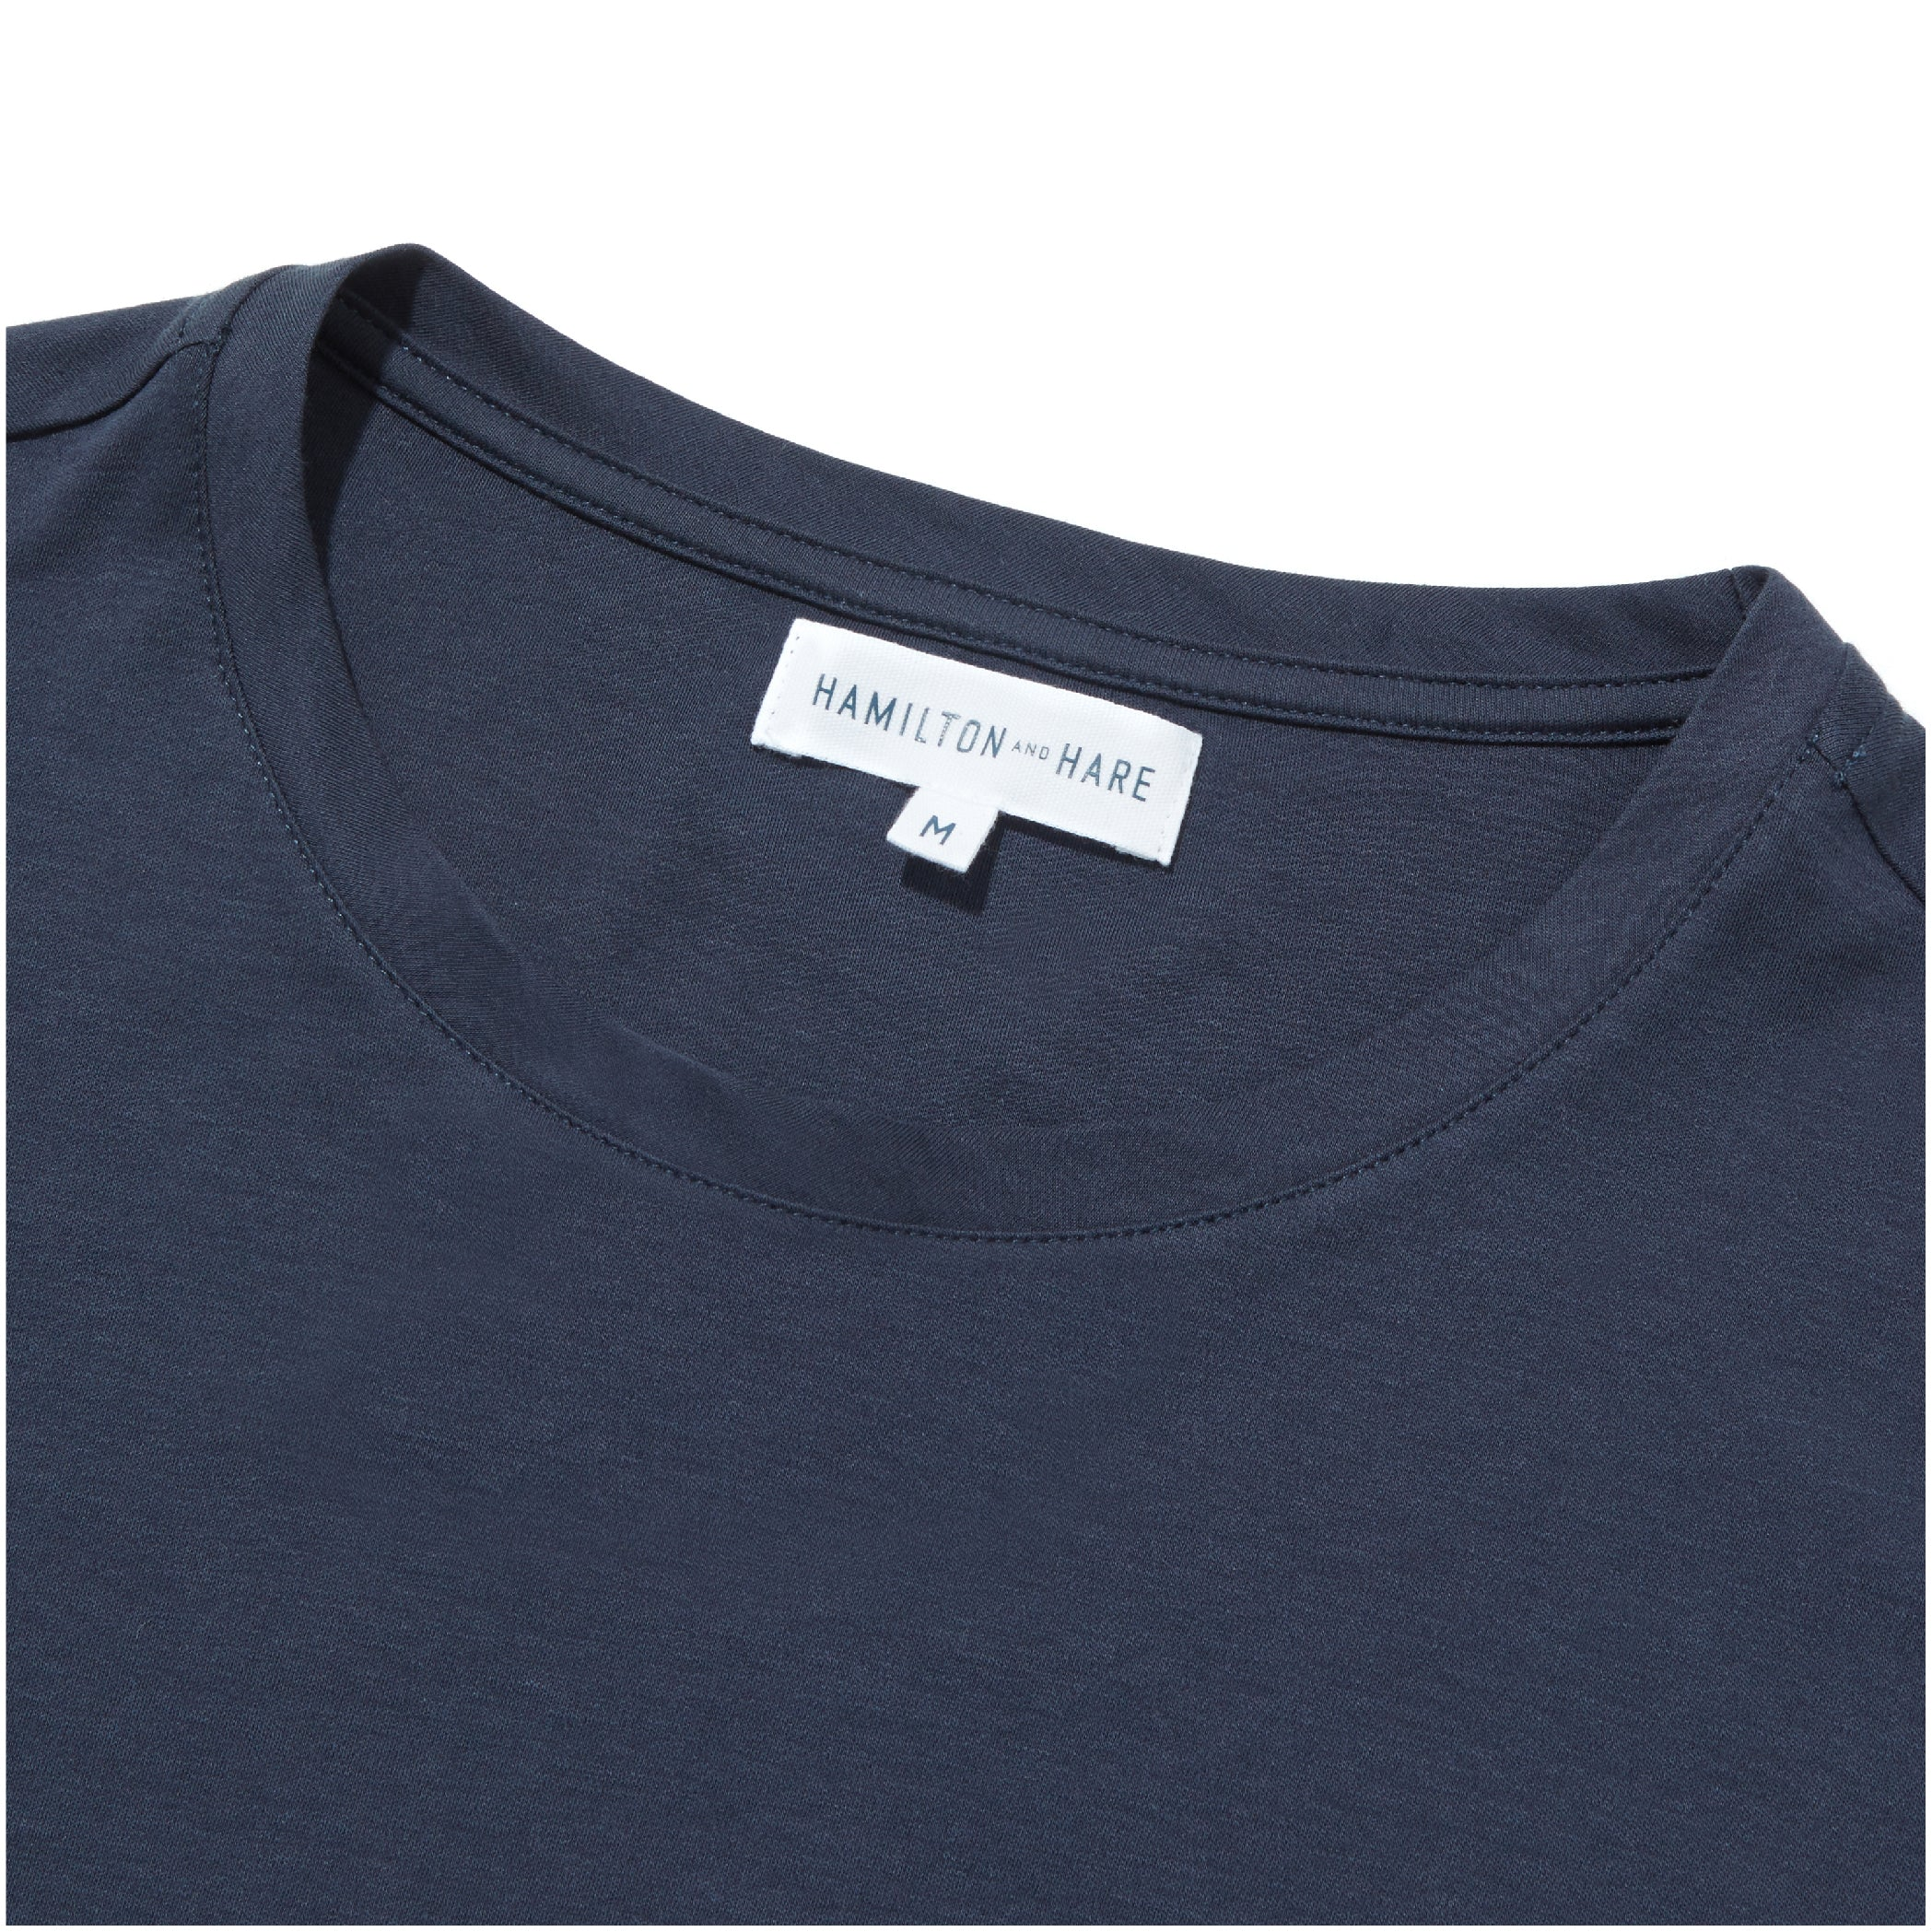 Relax T-Shirt - Navy - Hamilton and Hare Ltd